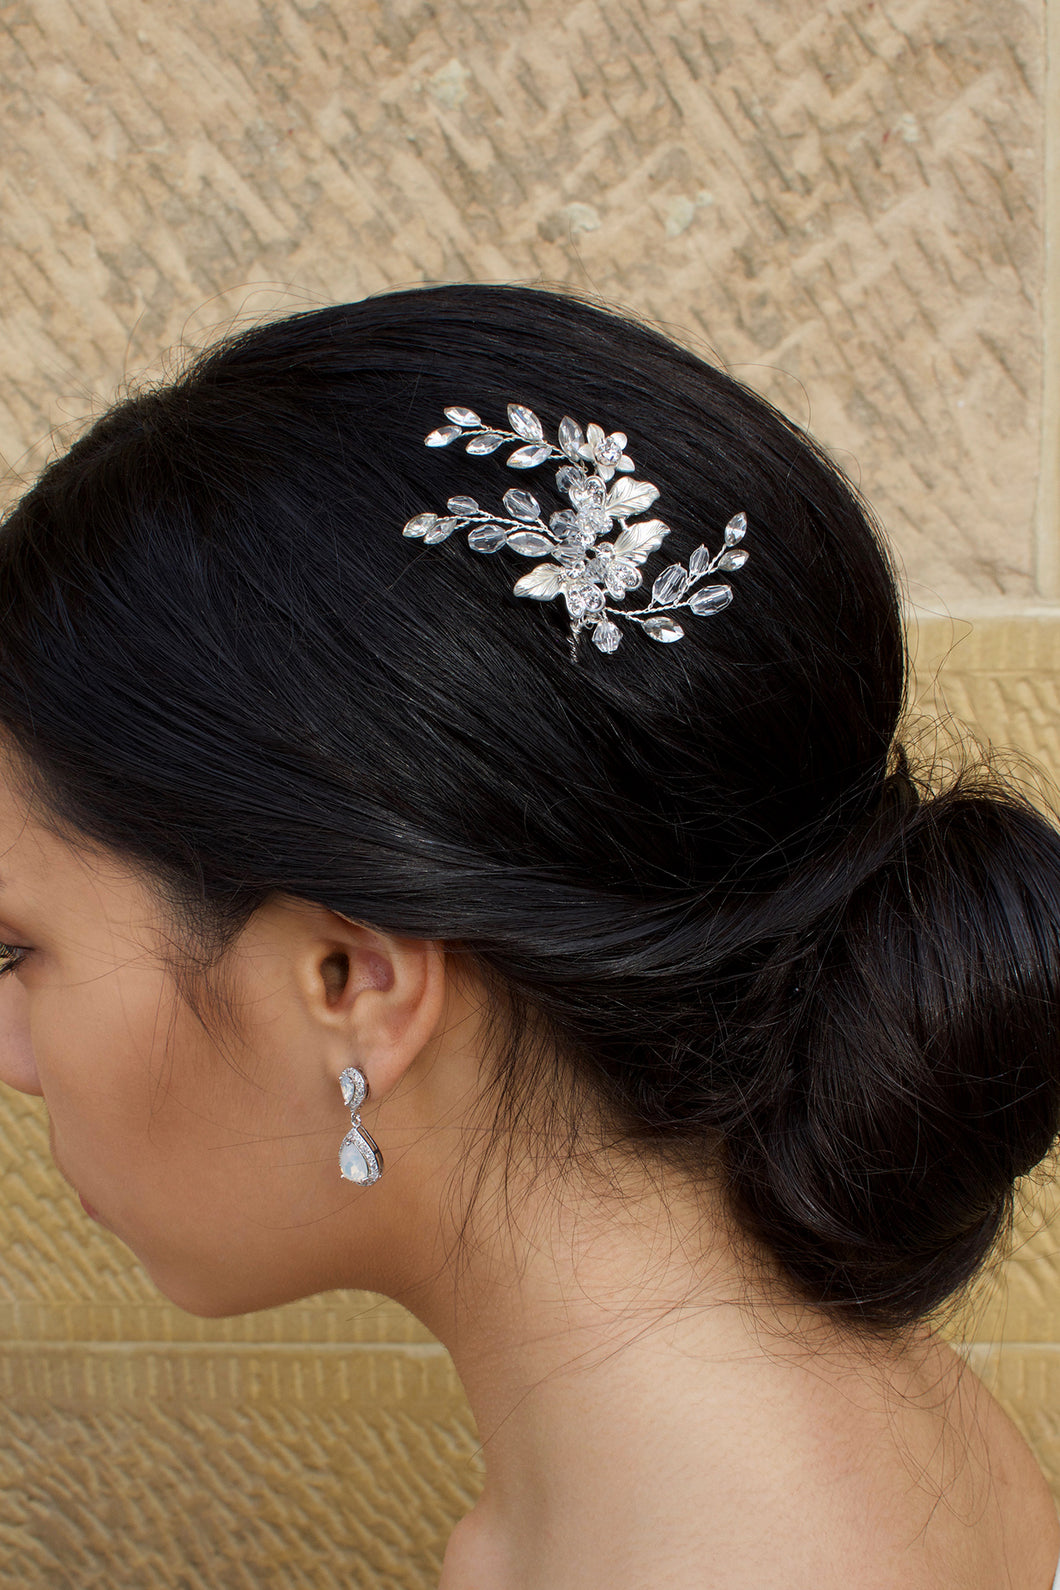 A model Bride with dark hair wears a small silver hairpin in her dark hair with a stone wall background